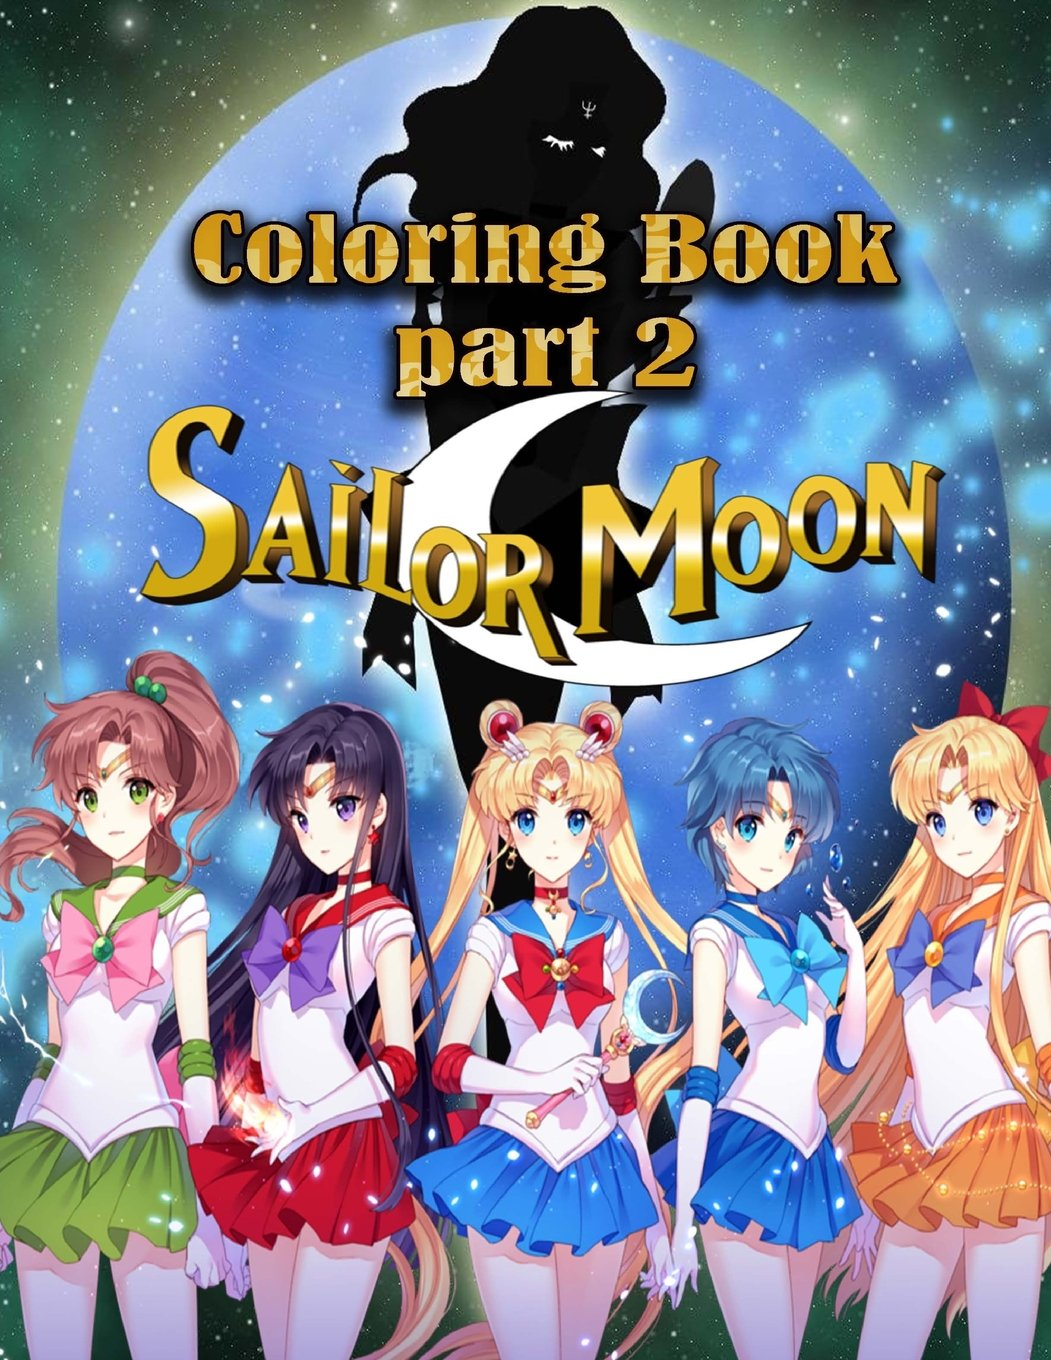 Sailor moon coloring book part 2 this amazing coloring book will